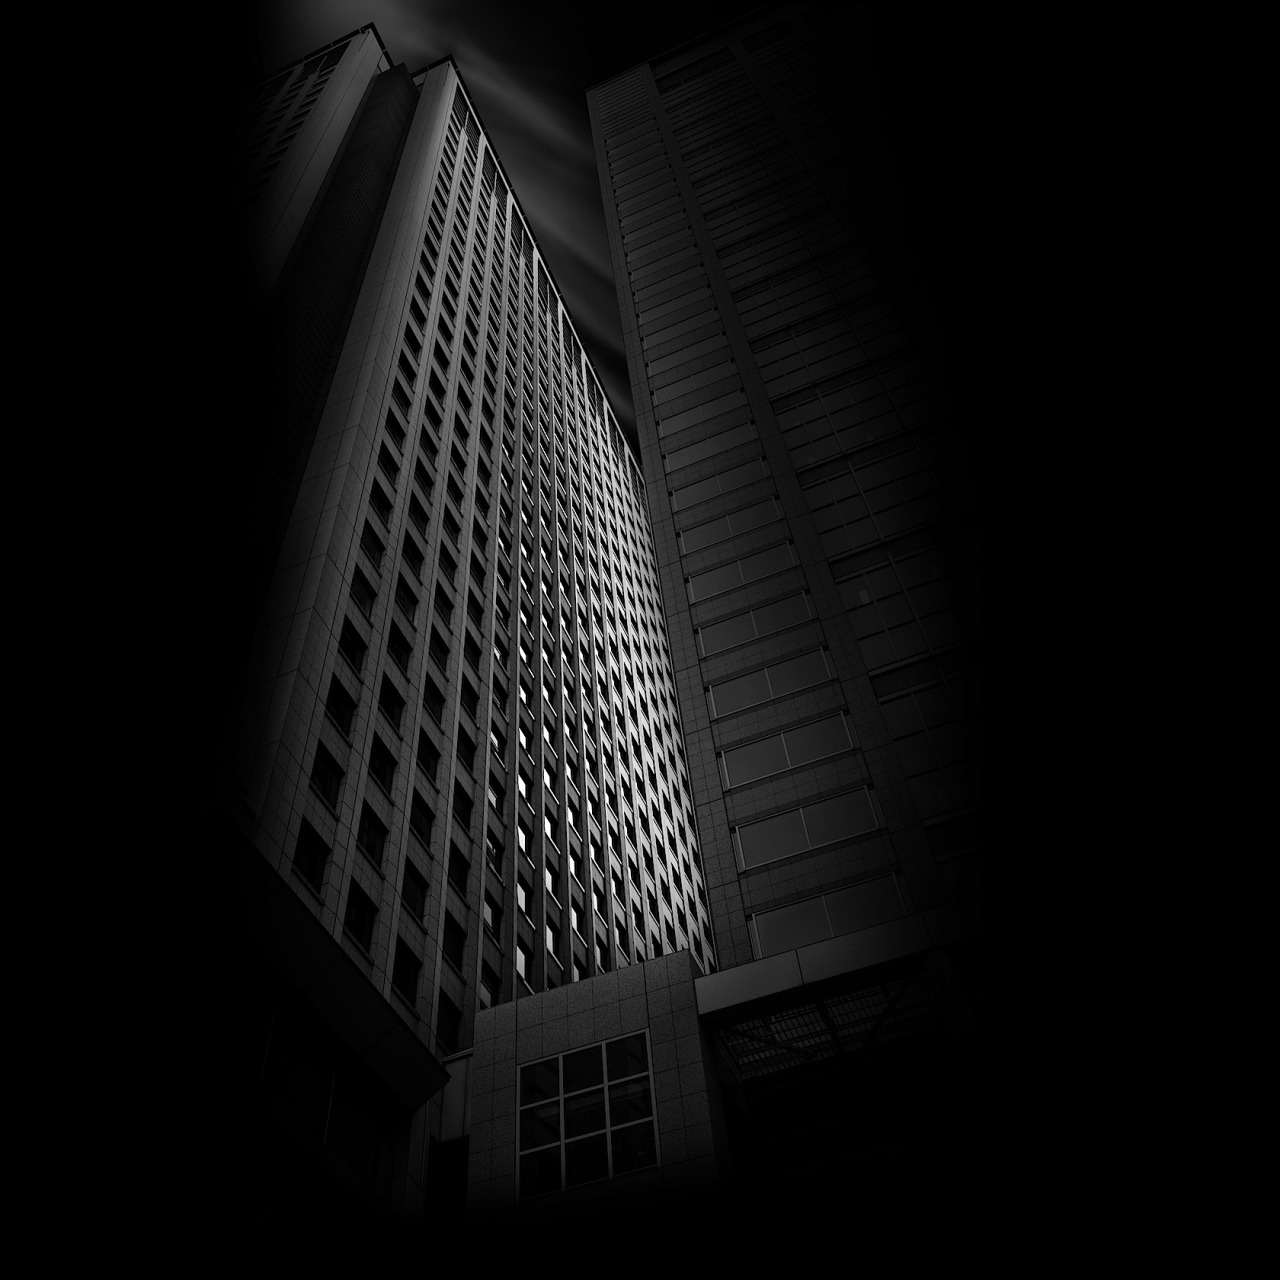 Black and White Architecture Photography by Jin… | Photo Blog